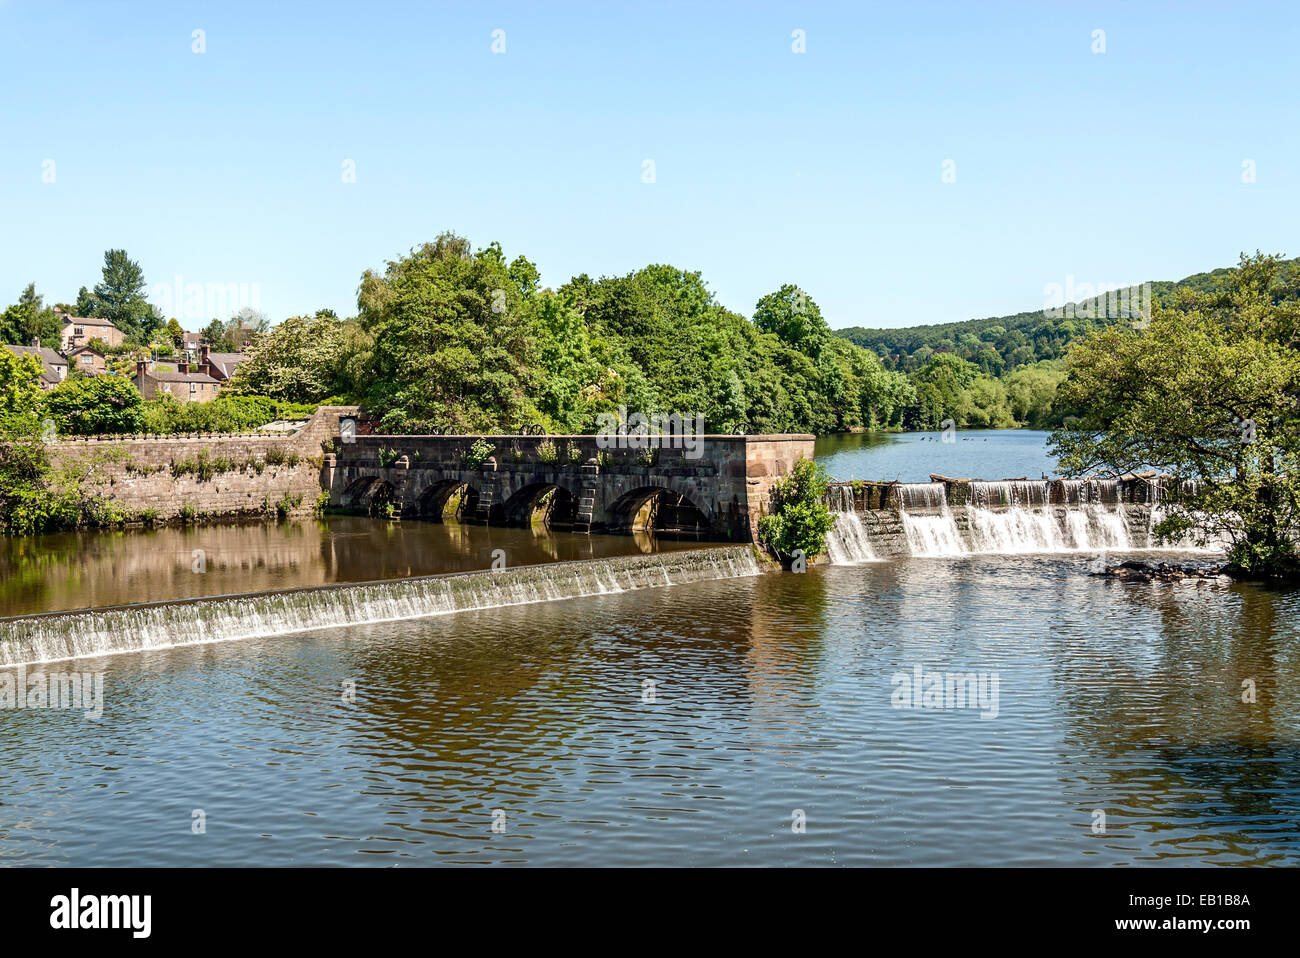 Belper North Mill is one of the Derwent Valley Mills designated UNESCO World Heritage Status in 2001, England. - Stock Image